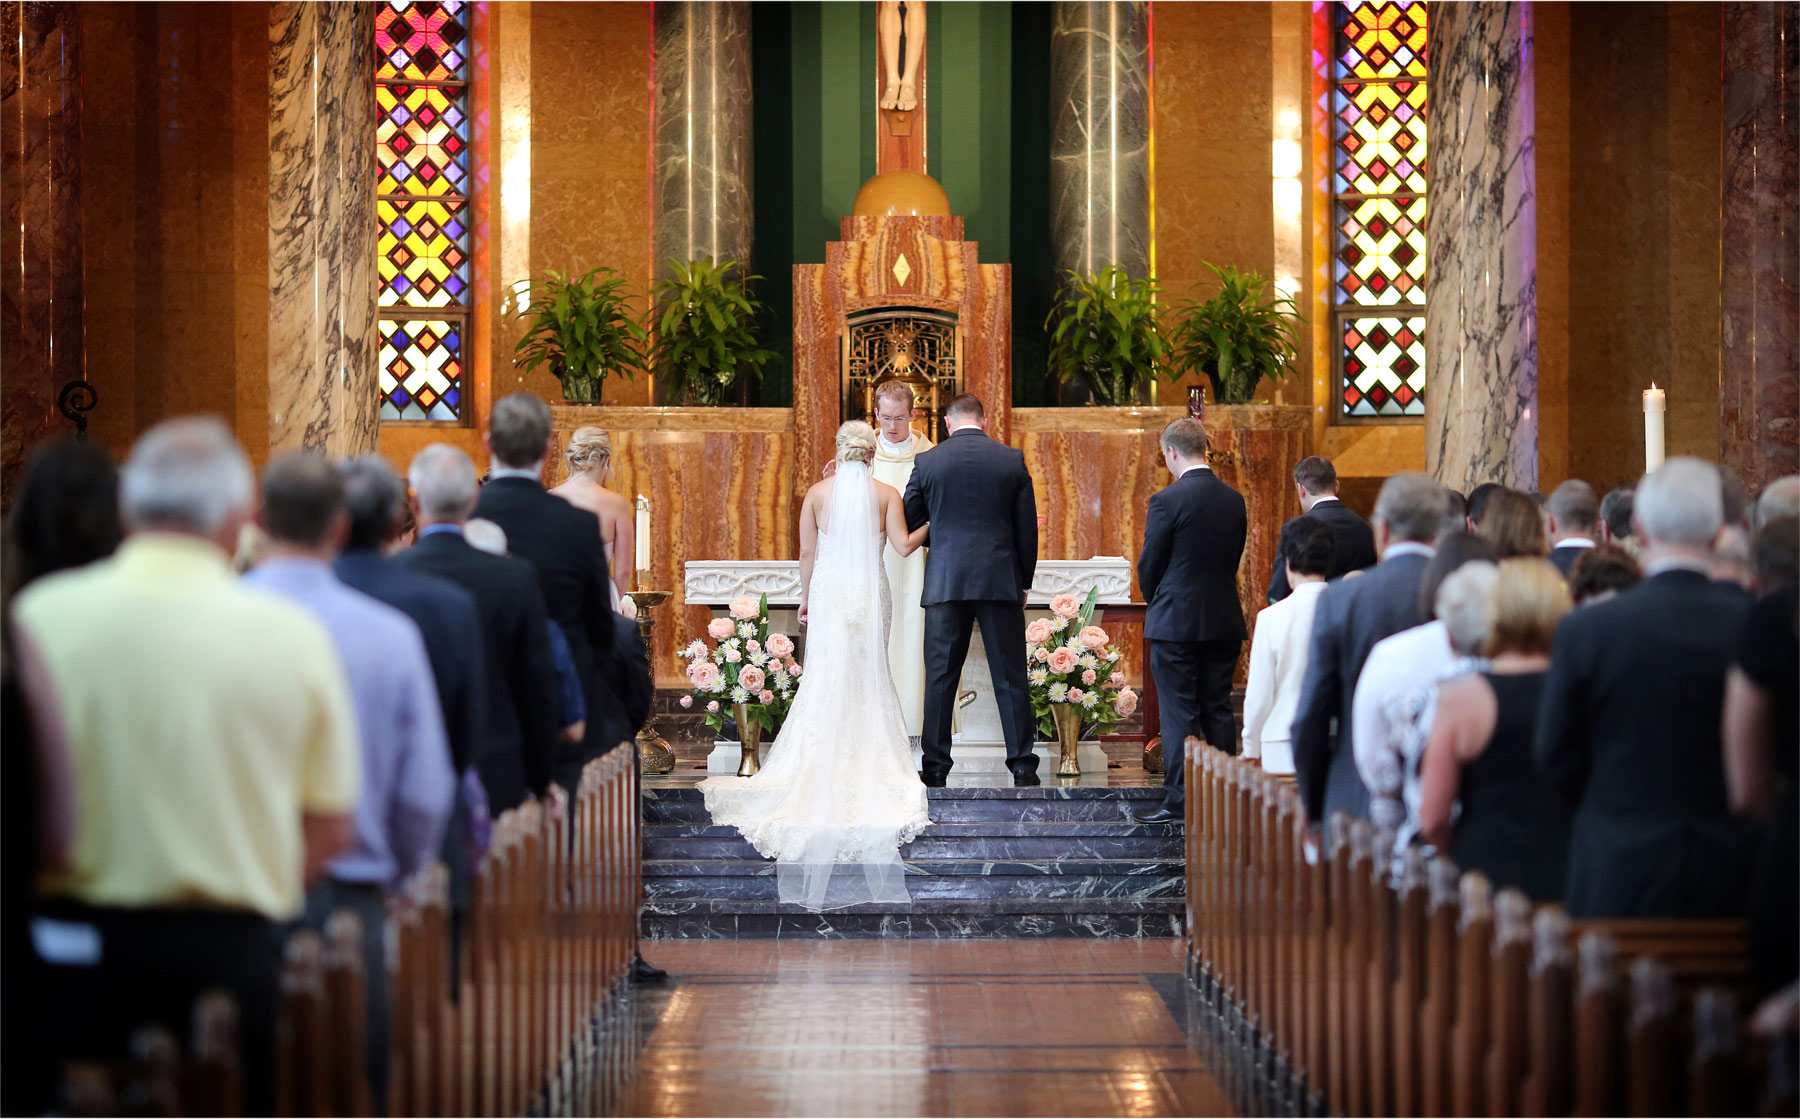 09-Duluth-Minnesota-Wedding-Photographer-by-Andrew-Vick-Photography-Summer-Cathedral-of-Our-Lady-of-the-Rosary-Church--Ceremony-Bride-Groom-Lindsey-and-Adam.jpg